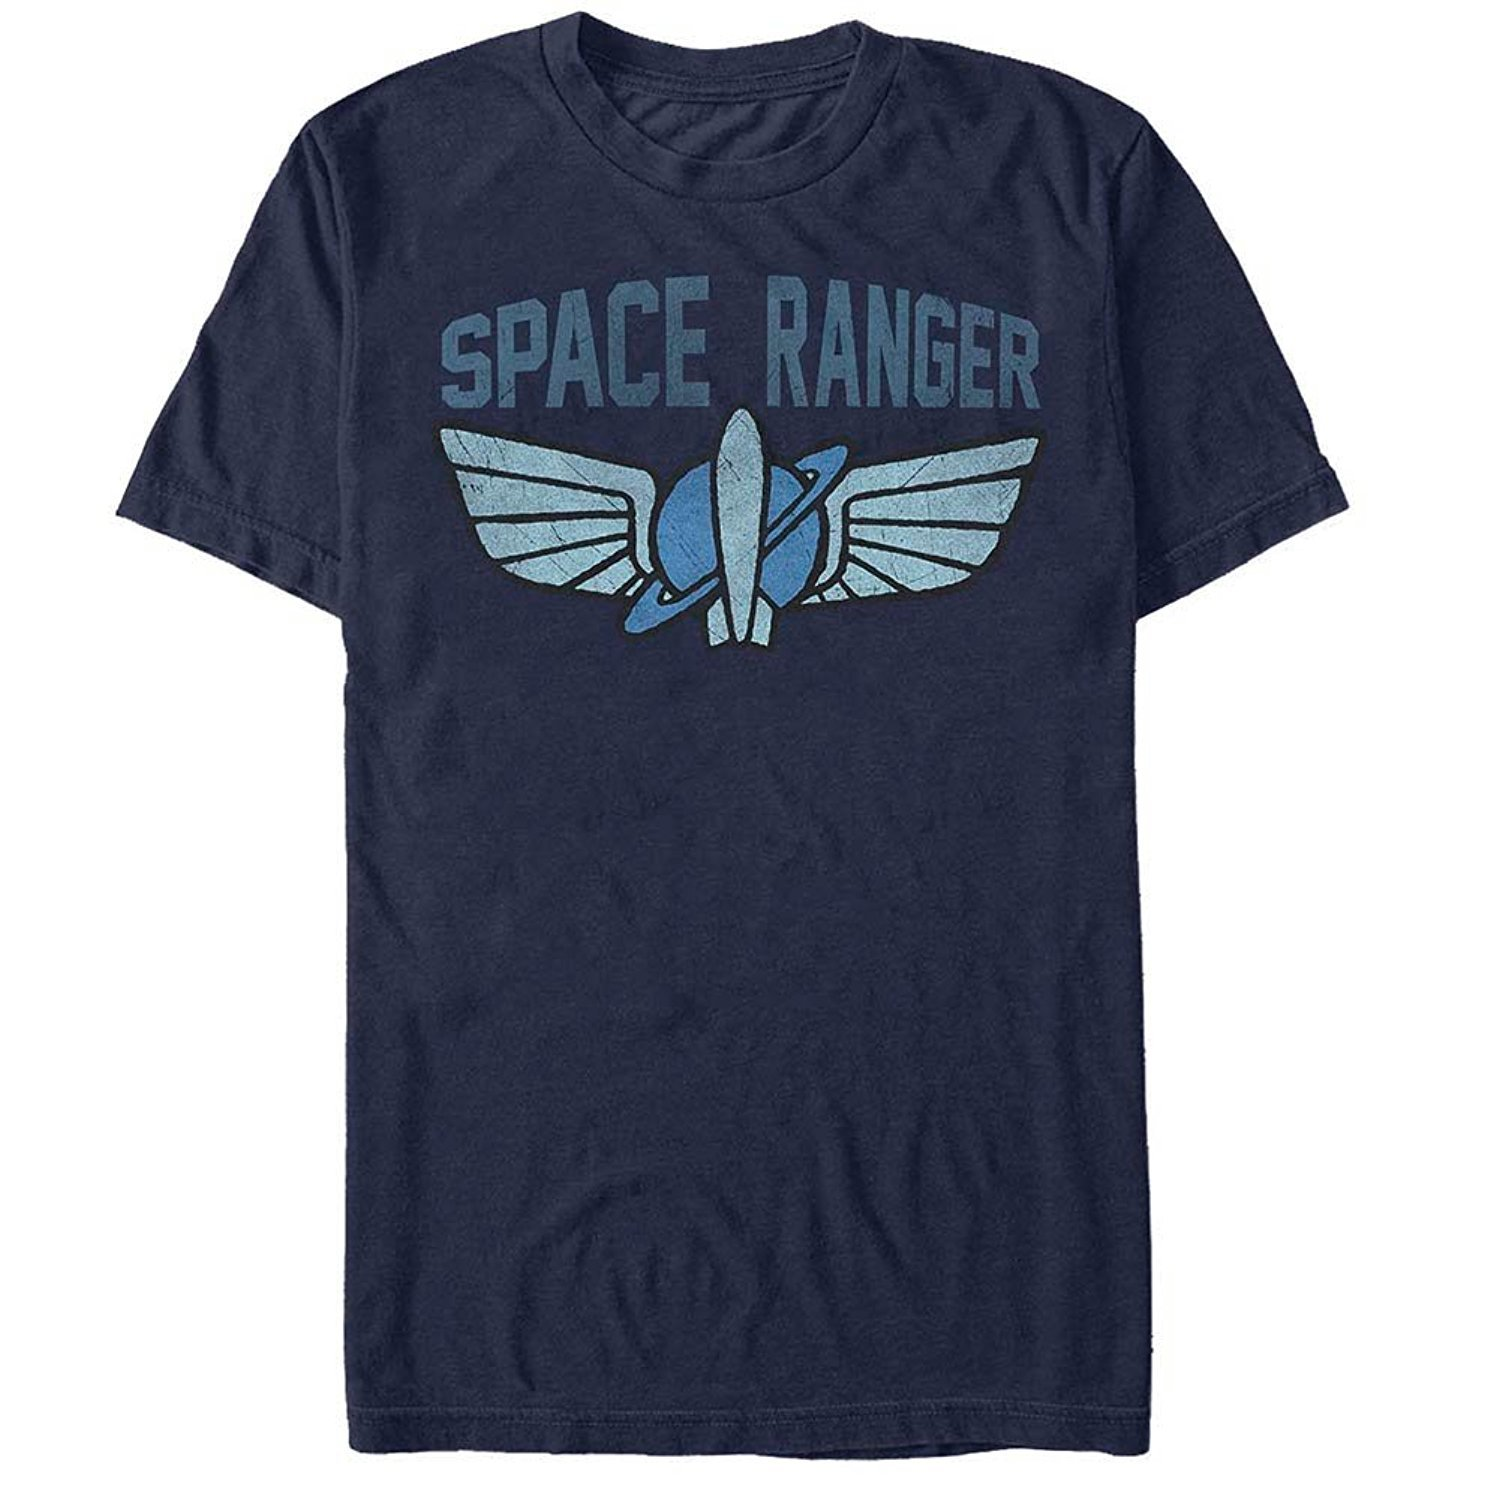 Toy Story Buzz Lightyear Space Ranger Logo Adult T.